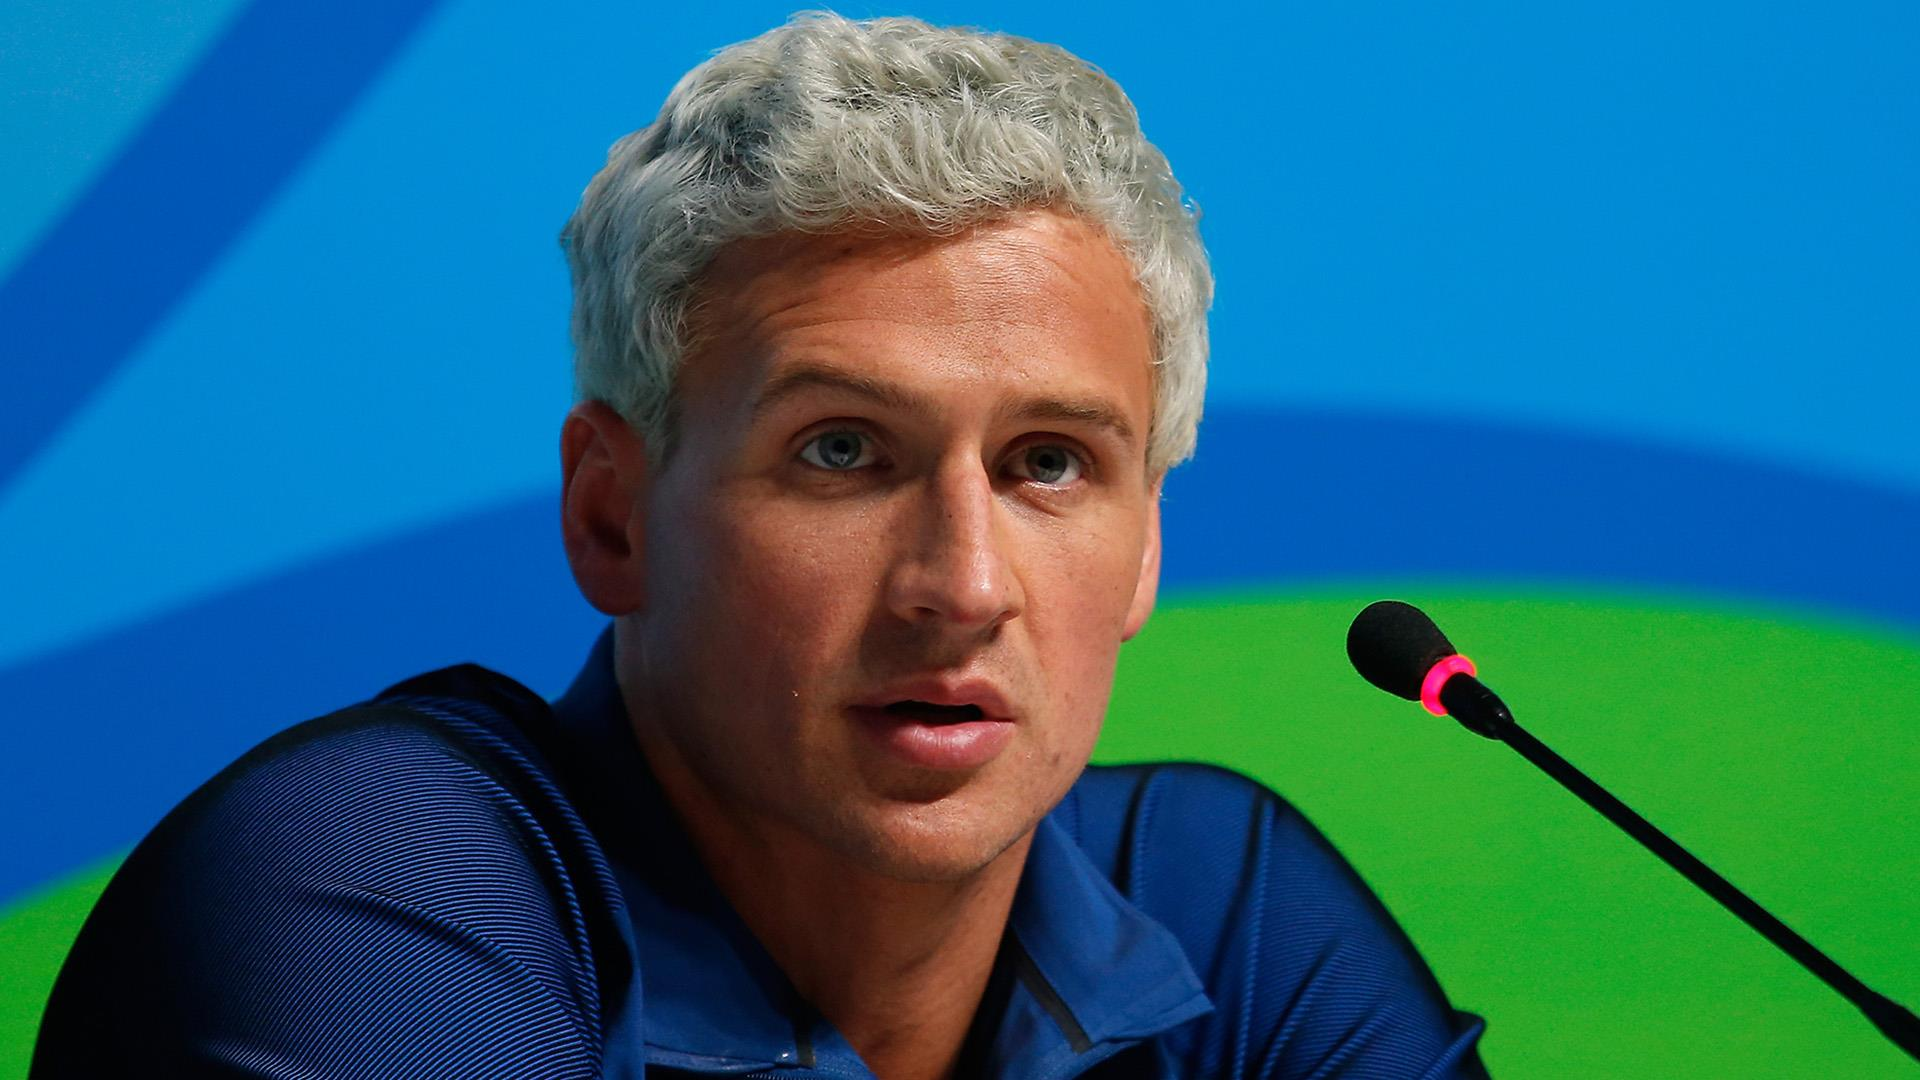 Ryan Lochte scandal: TODAY anchors hotly debate his intentions, whats next